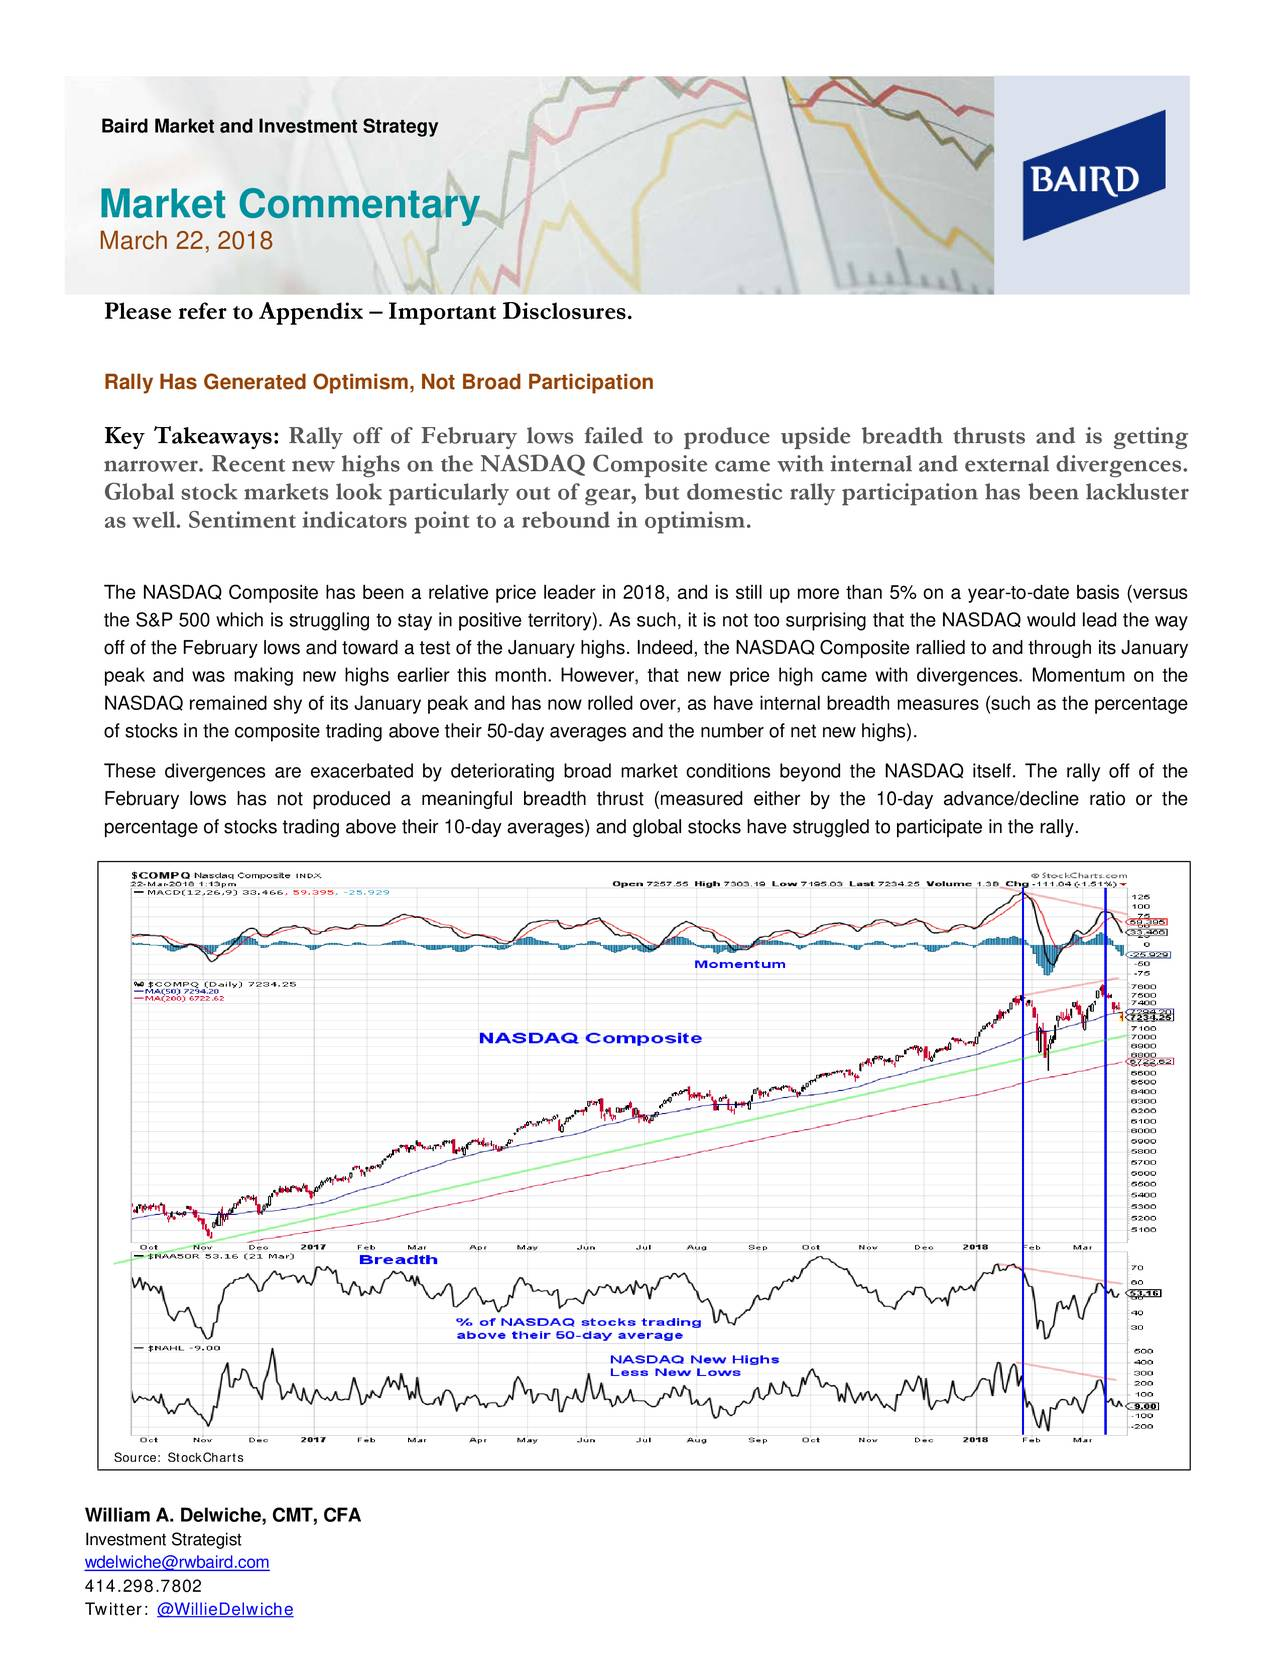 Market Commentary March 22, 2018 Please refer to Appendix – Important Disclosures. Rally Has Generated Optimism, Not Broad Participation Key Takeaways: Rally off of February lows failed to produce upside breadth thrusts and is getting narrower. Recent new highs on the NASDAQ Composite came with internal and external divergences. Global stock markets look particularly out of gear, but domestic rally participation has been lackluster as well. Sentiment indicators point to a rebound in optimism. The NASDAQ Composite has been a relative price leader in 2018, and is still up more than 5% on a-to-date basis (versus the S&P 500 which is struggling to stay in positive territory). As such, it is not too surprising that the NASDAQ would lead the way off of the February lows and toward a test of the January highs. Indeed, the NASDAQ Composite rallied to and through its January peak and was making new highs earlier this month. However, that new price high came with divergences. Momentum on the NASDAQ remained shy of its January peak and has now rolled over, as have internal breadth measures (such as the percentage of stocks in the composite trading above their 50-day averages and the number of net new highs). These divergences are exacerbated by deteriorating broad market conditions beyond the NASDAQ itself. The rally off of the February lows has not produced a meaningful breadth thrust (measured either by the 10-day advance/decline ratio or the percentage of stocks trading above their 10-day averages) and global stocks have struggled to participate in the rally. Source: StockCharts William A. Delwiche, CMT, CFA Investment Strategist wdelwiche@rwbaird.com 414.298.7802 Twitter: @WillieDelwiche